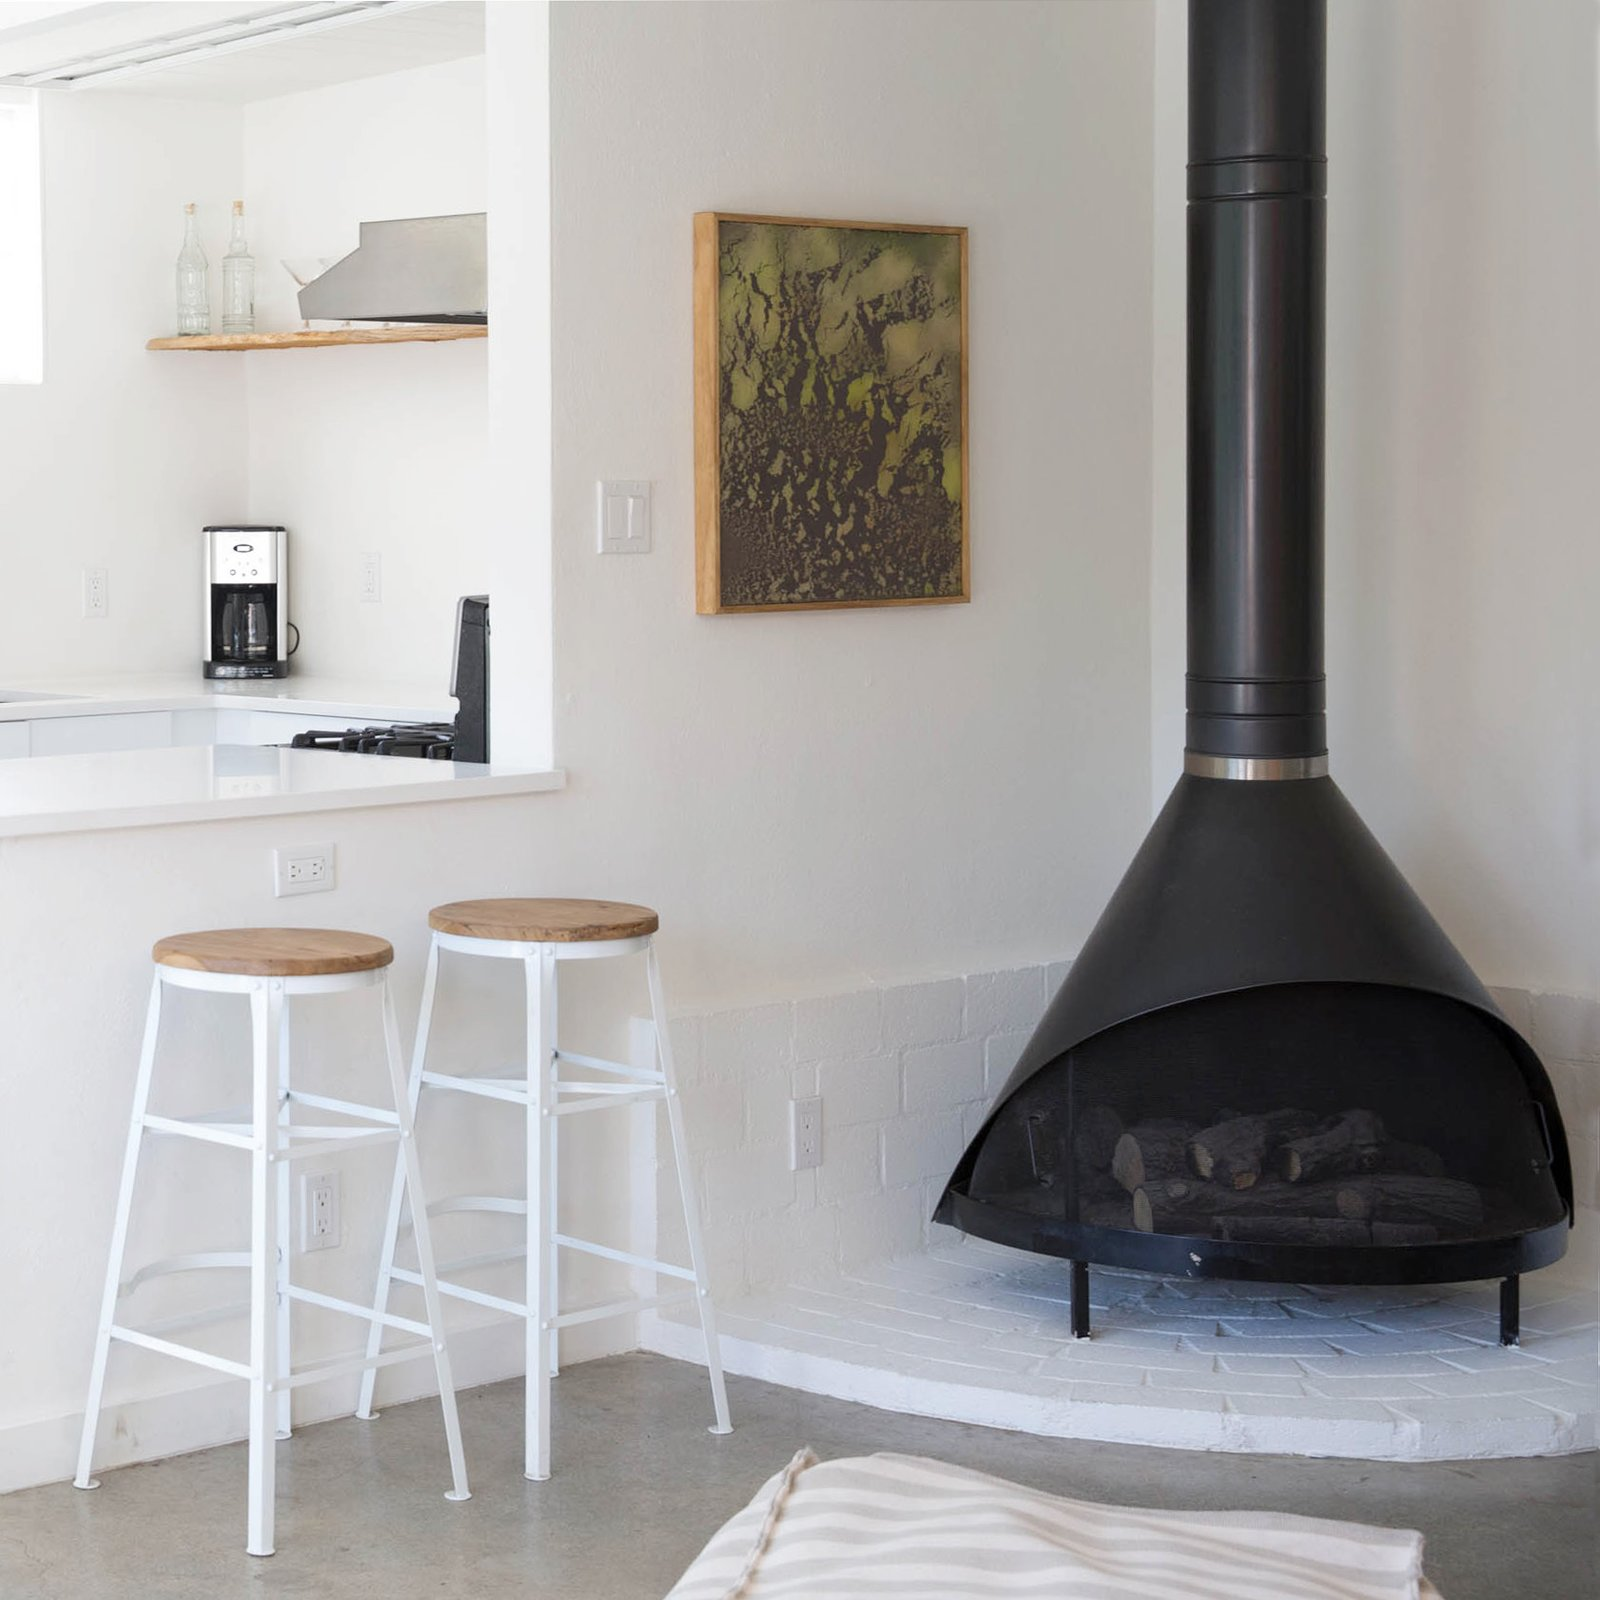 The Amado wood burning fireplace in corner of the living area.